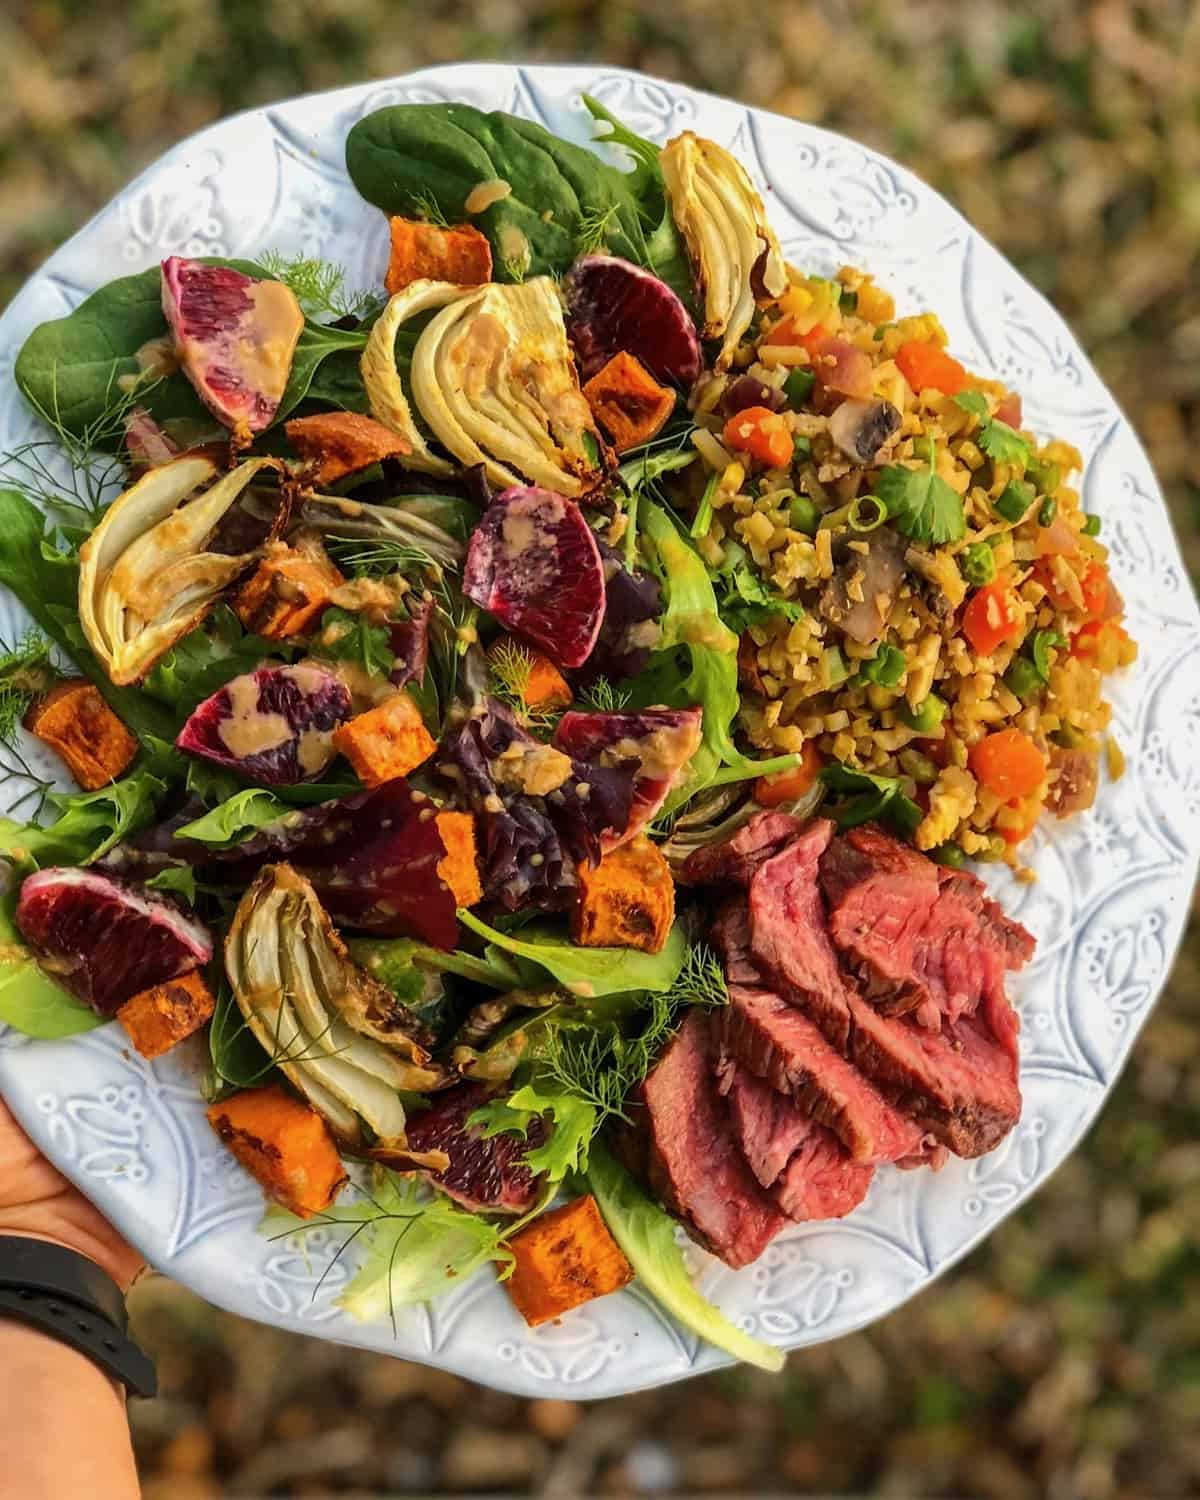 Plate of a big salad with greens, roasted fennel, blood oranges, and sweet potatoes, steak, and broccoli fried rice